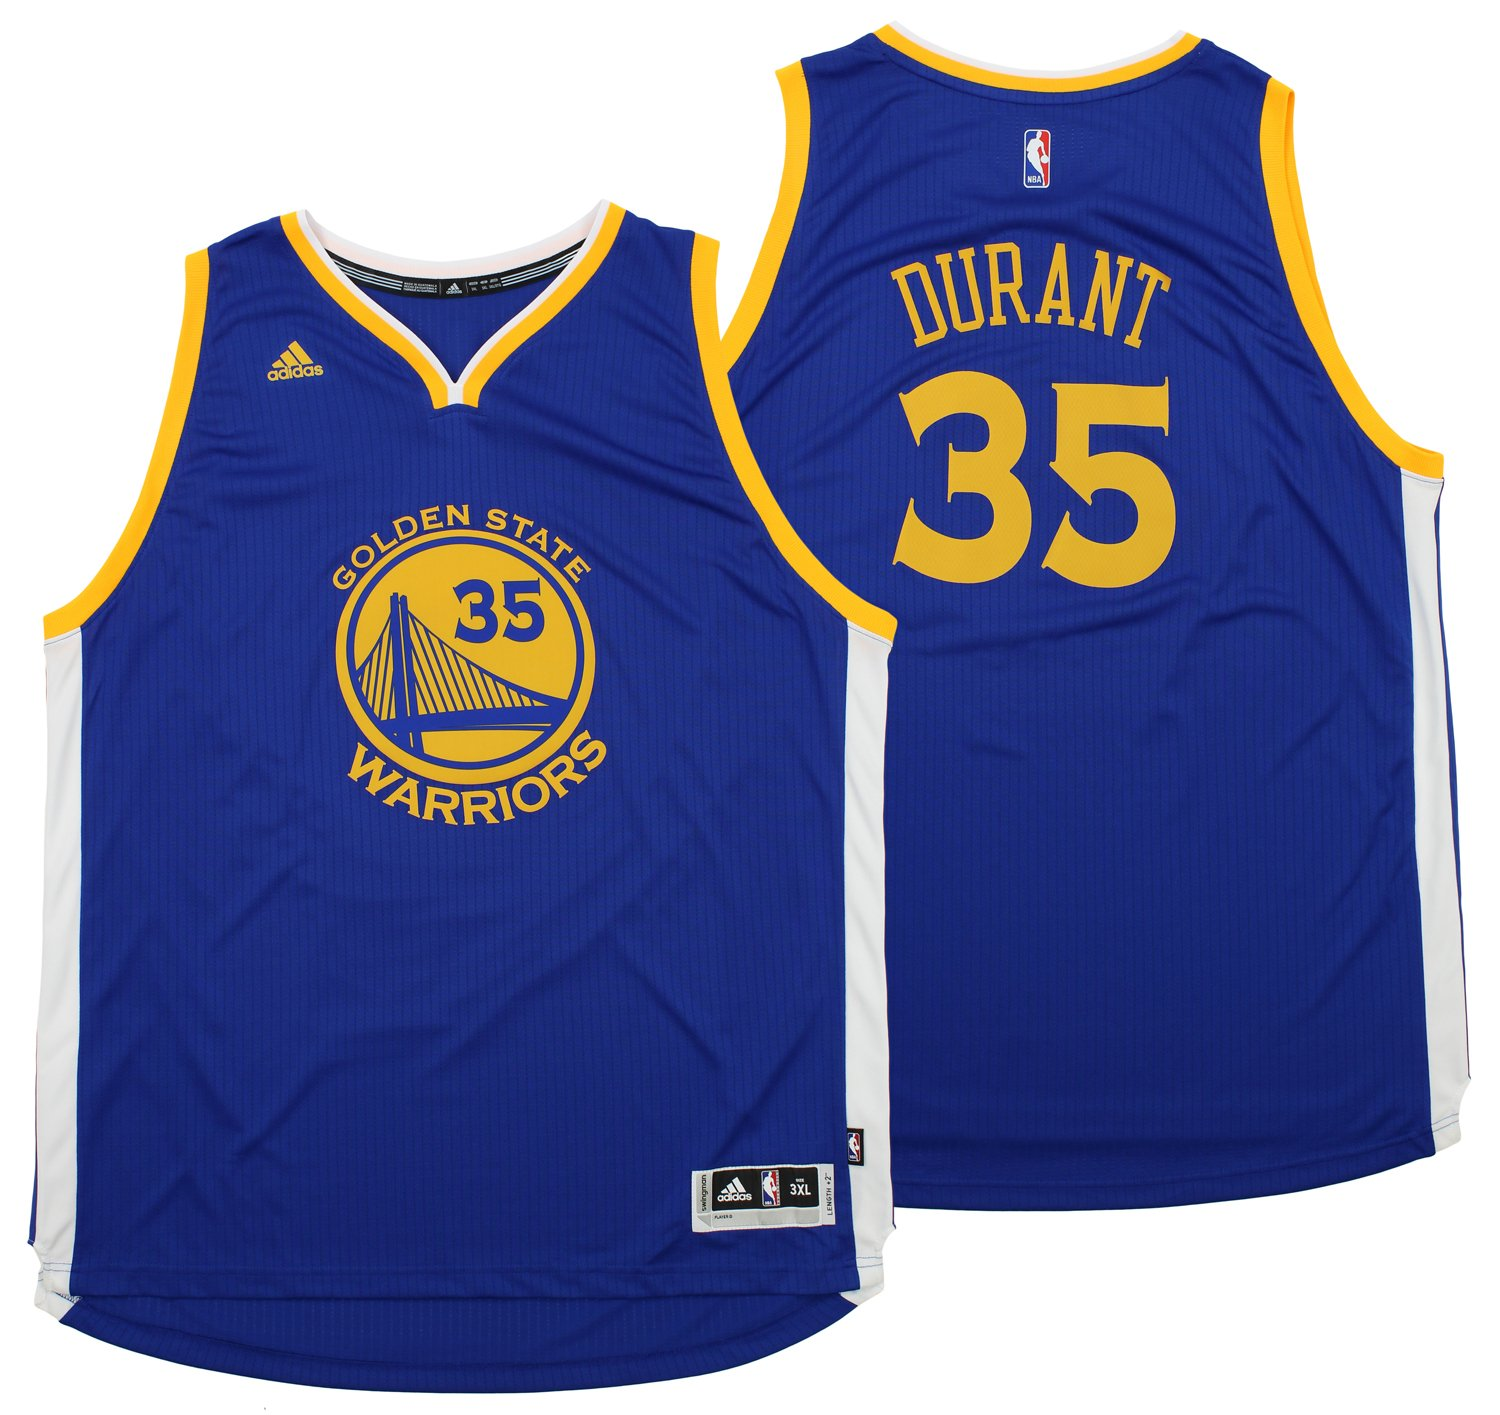 promo code 7d5f9 0fe0e usa kevin durant golden state jersey 13e02 b27f2